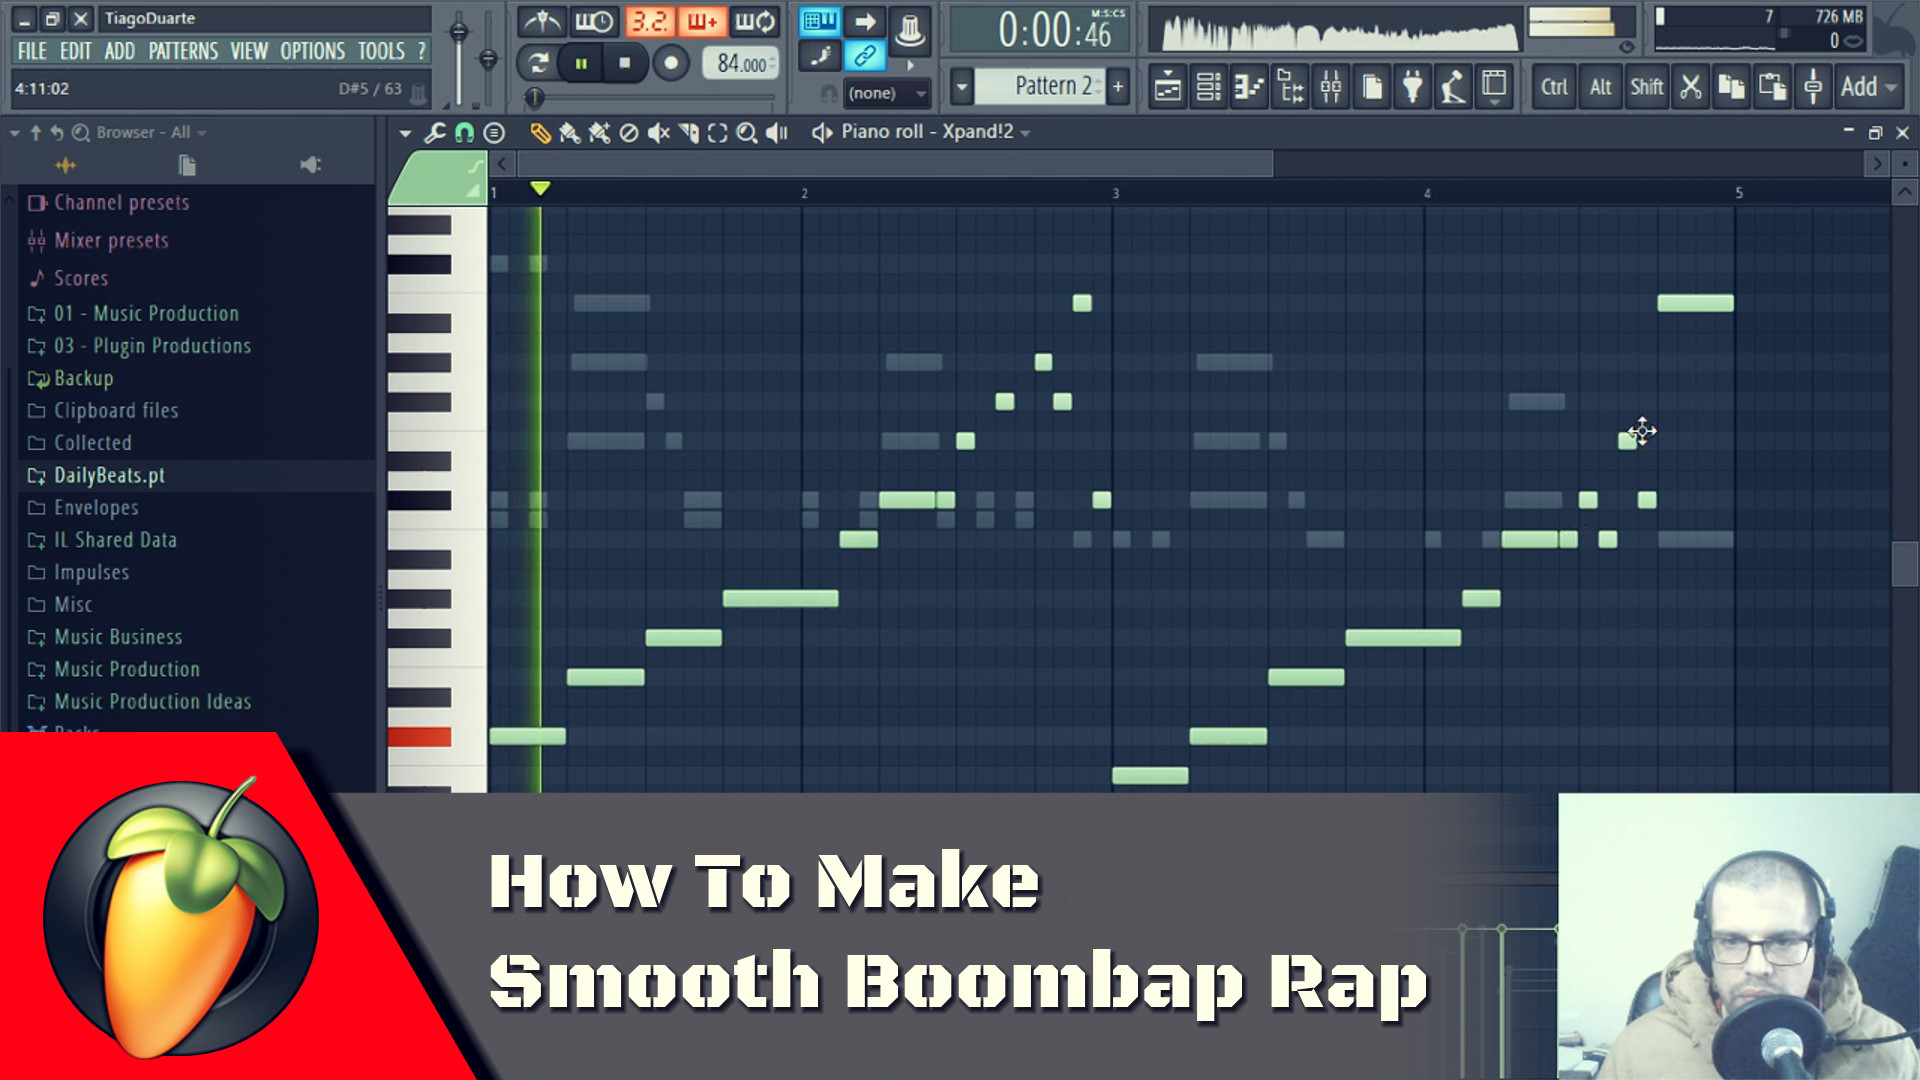 How To Make Smooth Boombap Rap